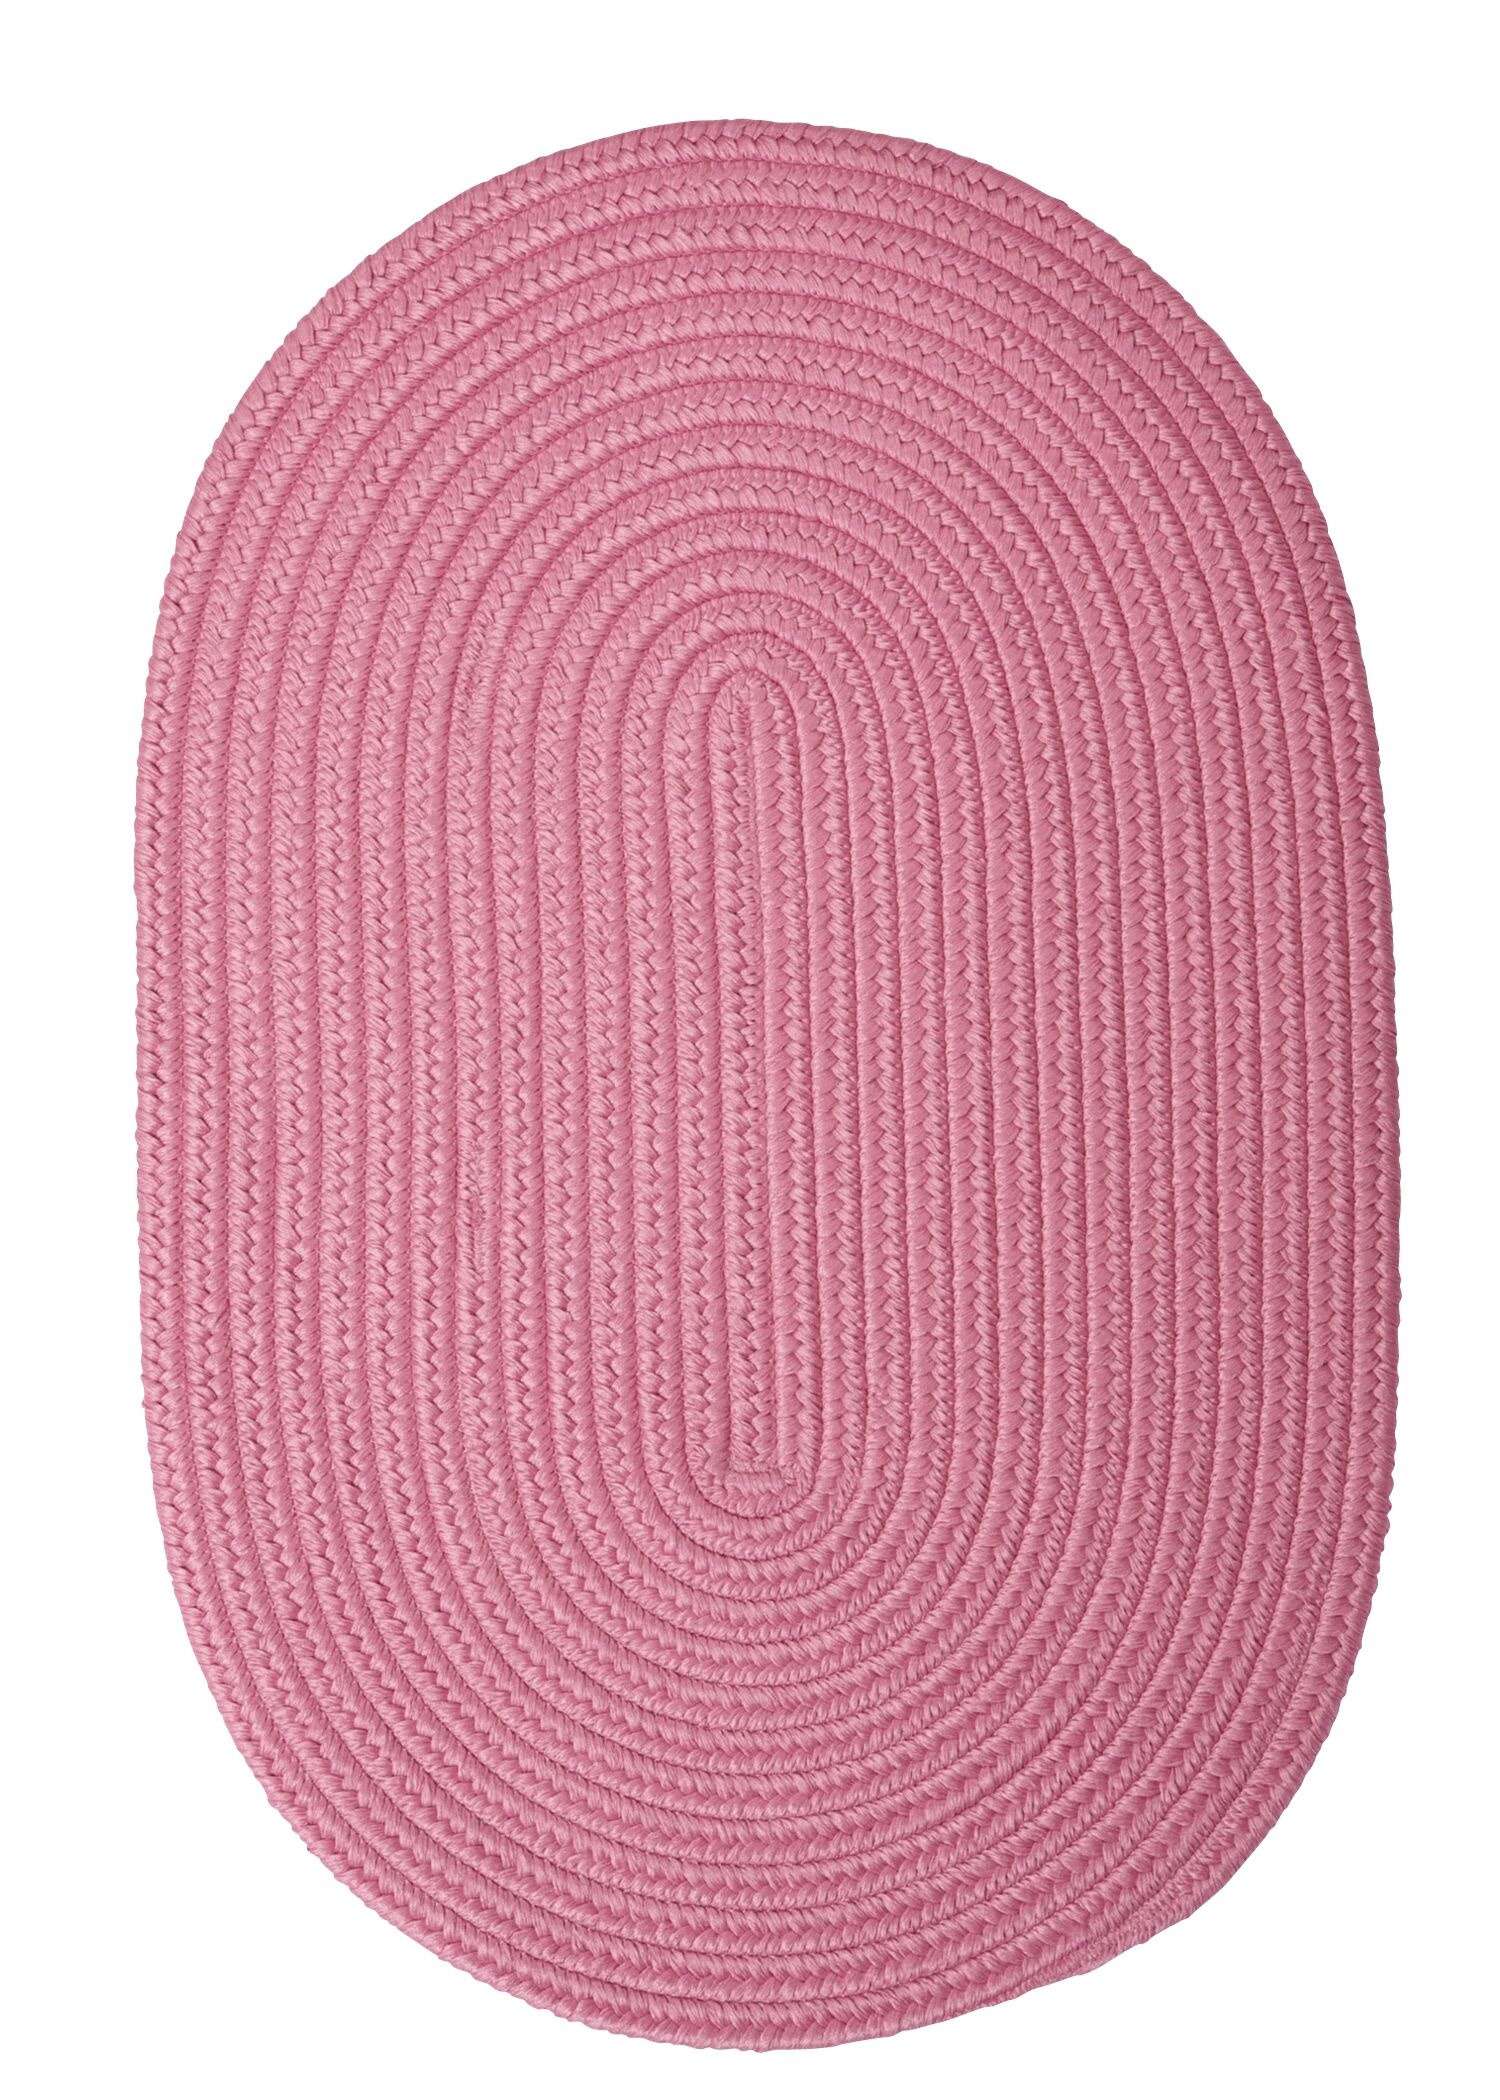 Mcintyre Camerum Outdoor Area Rug Rug Size: Oval 8' x 11'